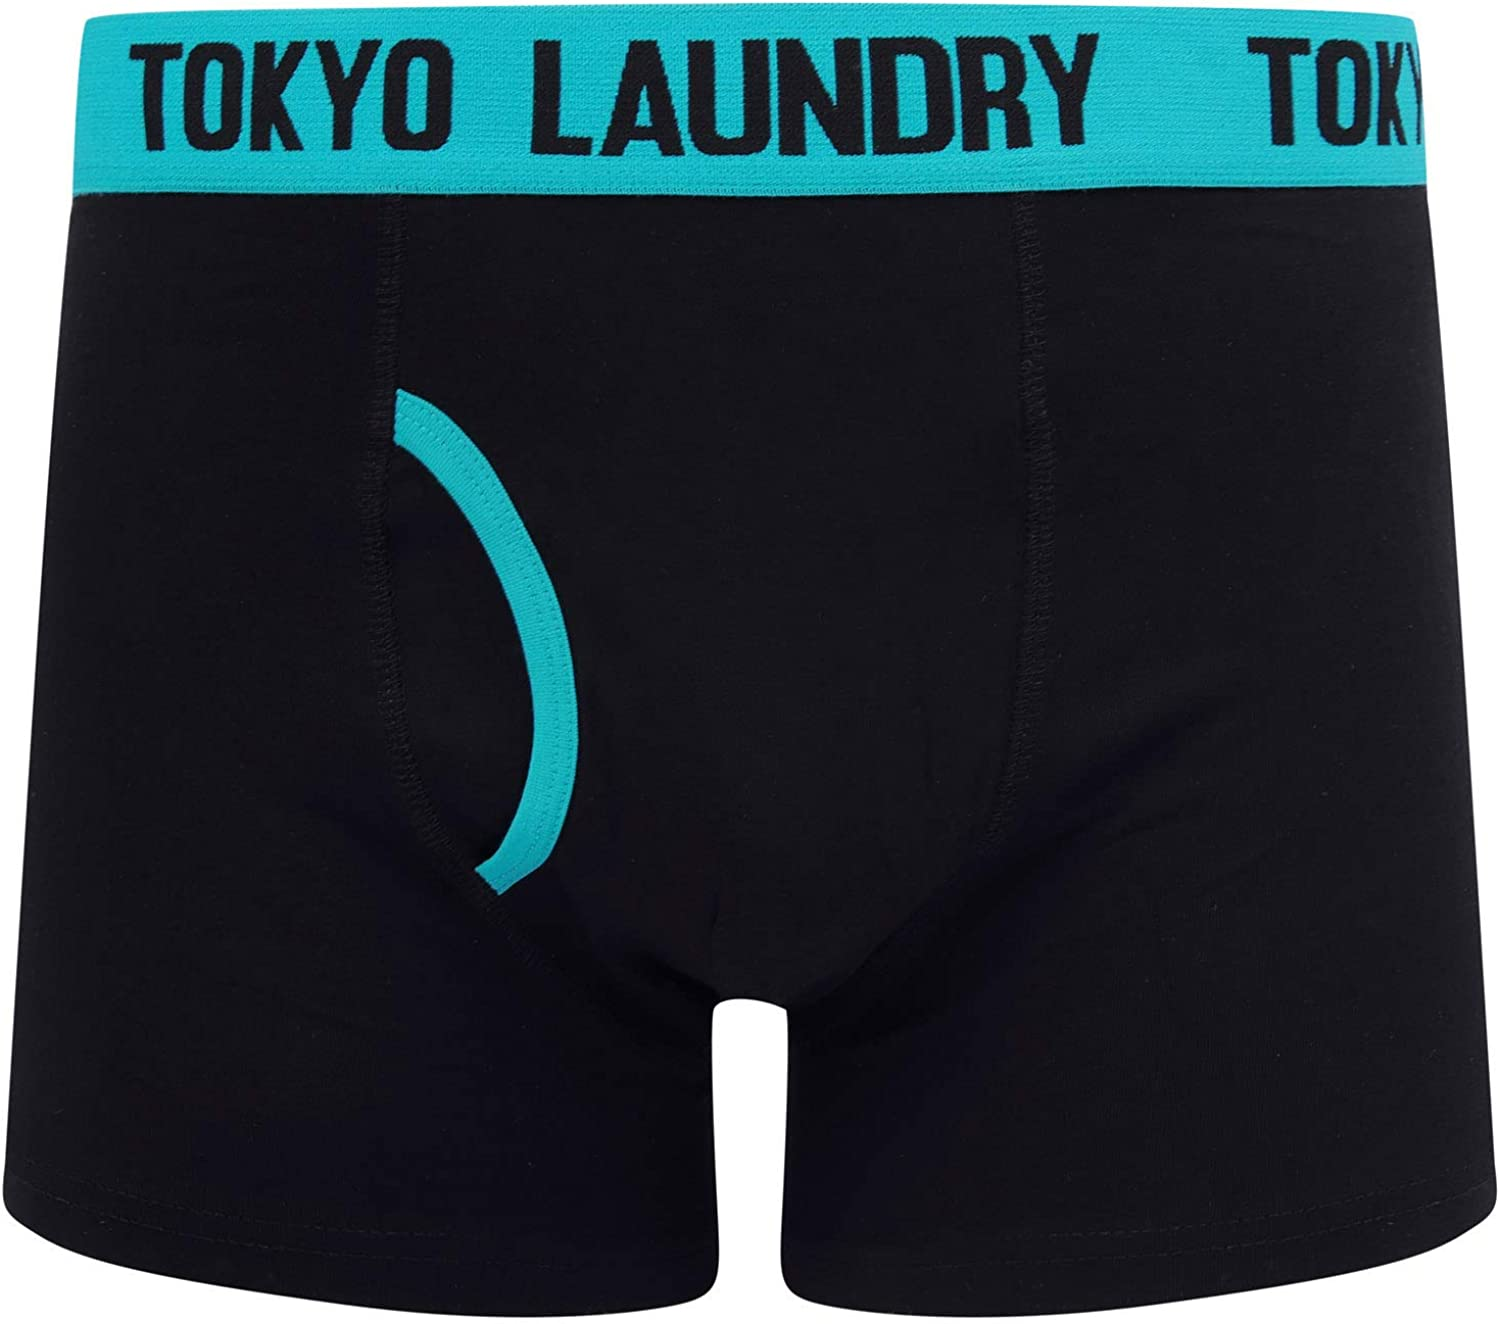 Tokyo Laundry Mens Striped Twin Pack Boxer Shorts Brompton 2 - Blue-green